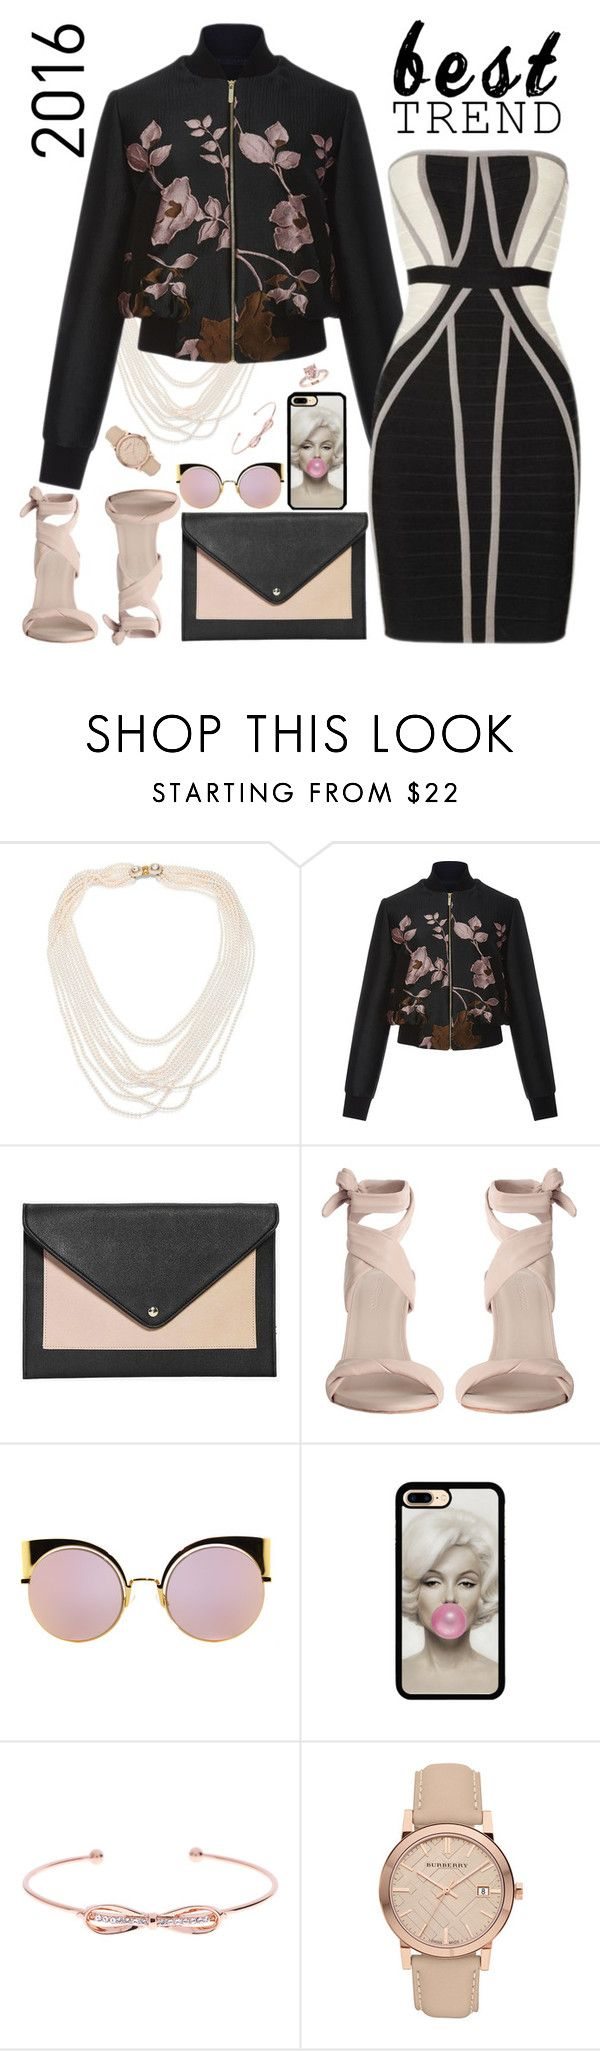 """Bomber Jacket & Bandage Dress"" by petalp ❤ liked on Polyvore featuring Oscar de la Renta, Elie Saab, Boohoo, Zimmermann, Fendi, Ted Baker, Burberry, dress and jacket"